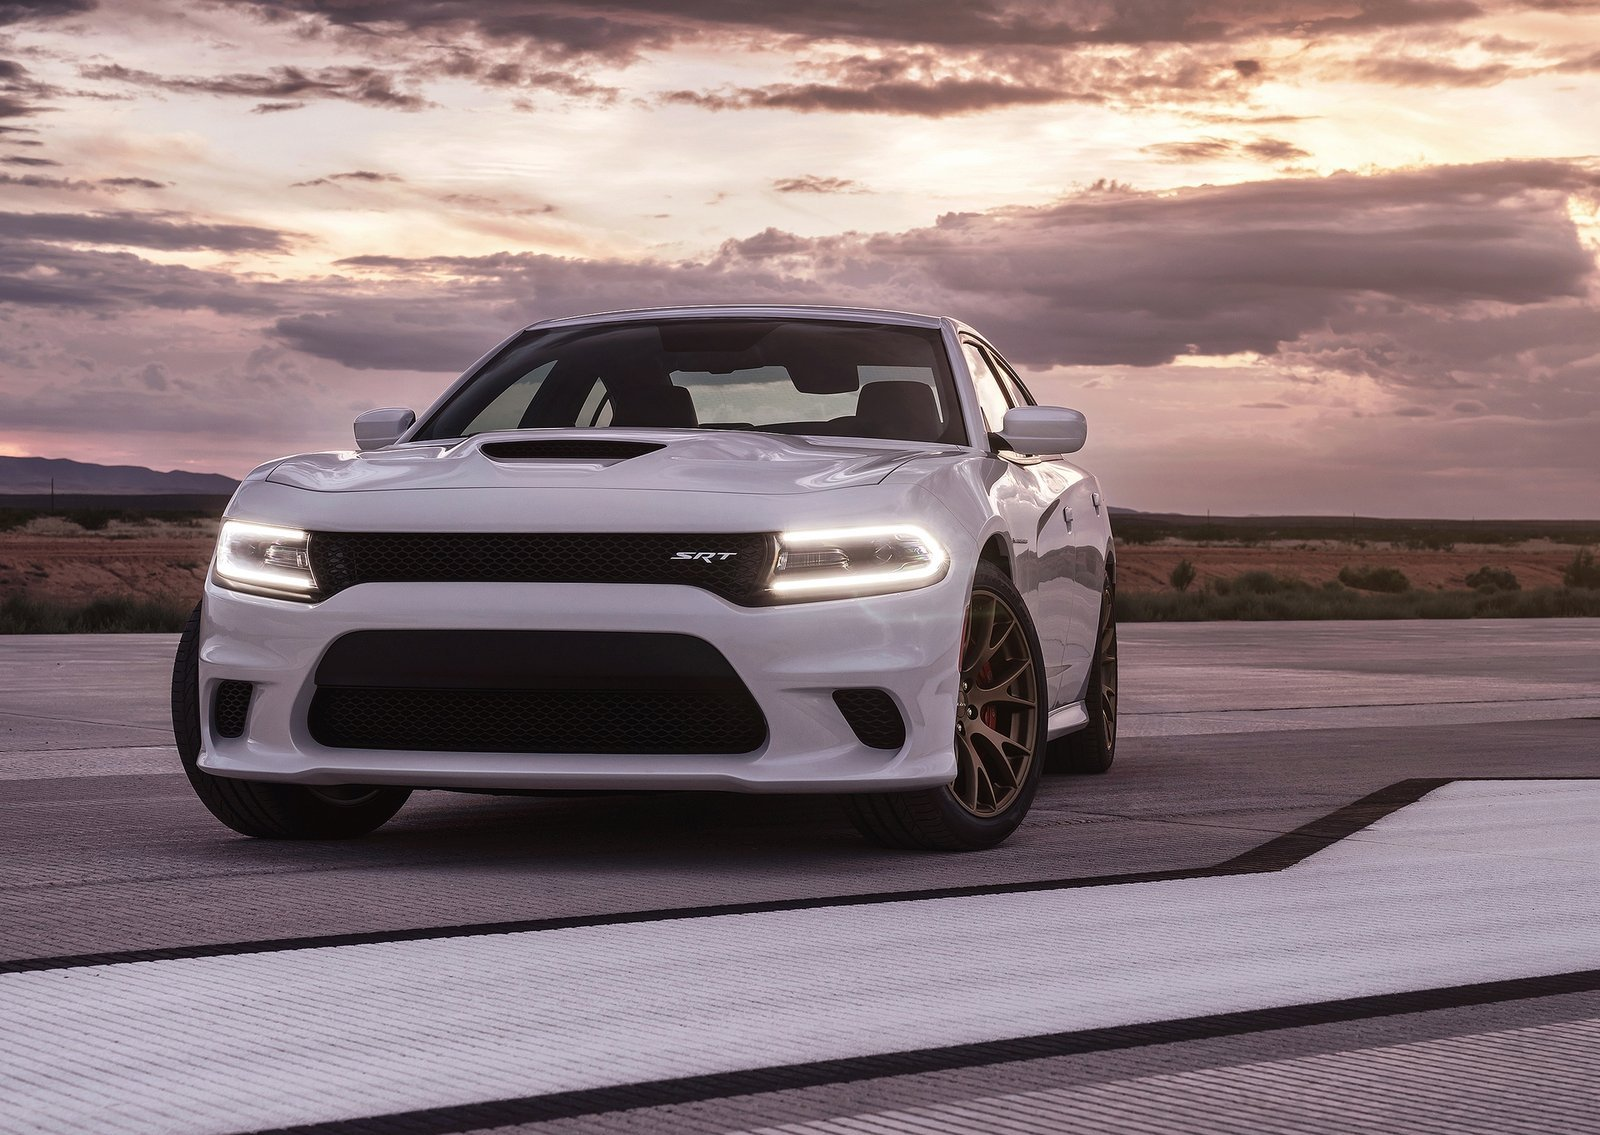 2016 Dodge Challenger Hellcat Pricing Goes North, Price Goes Up for the Charger Hellcat as Well ...